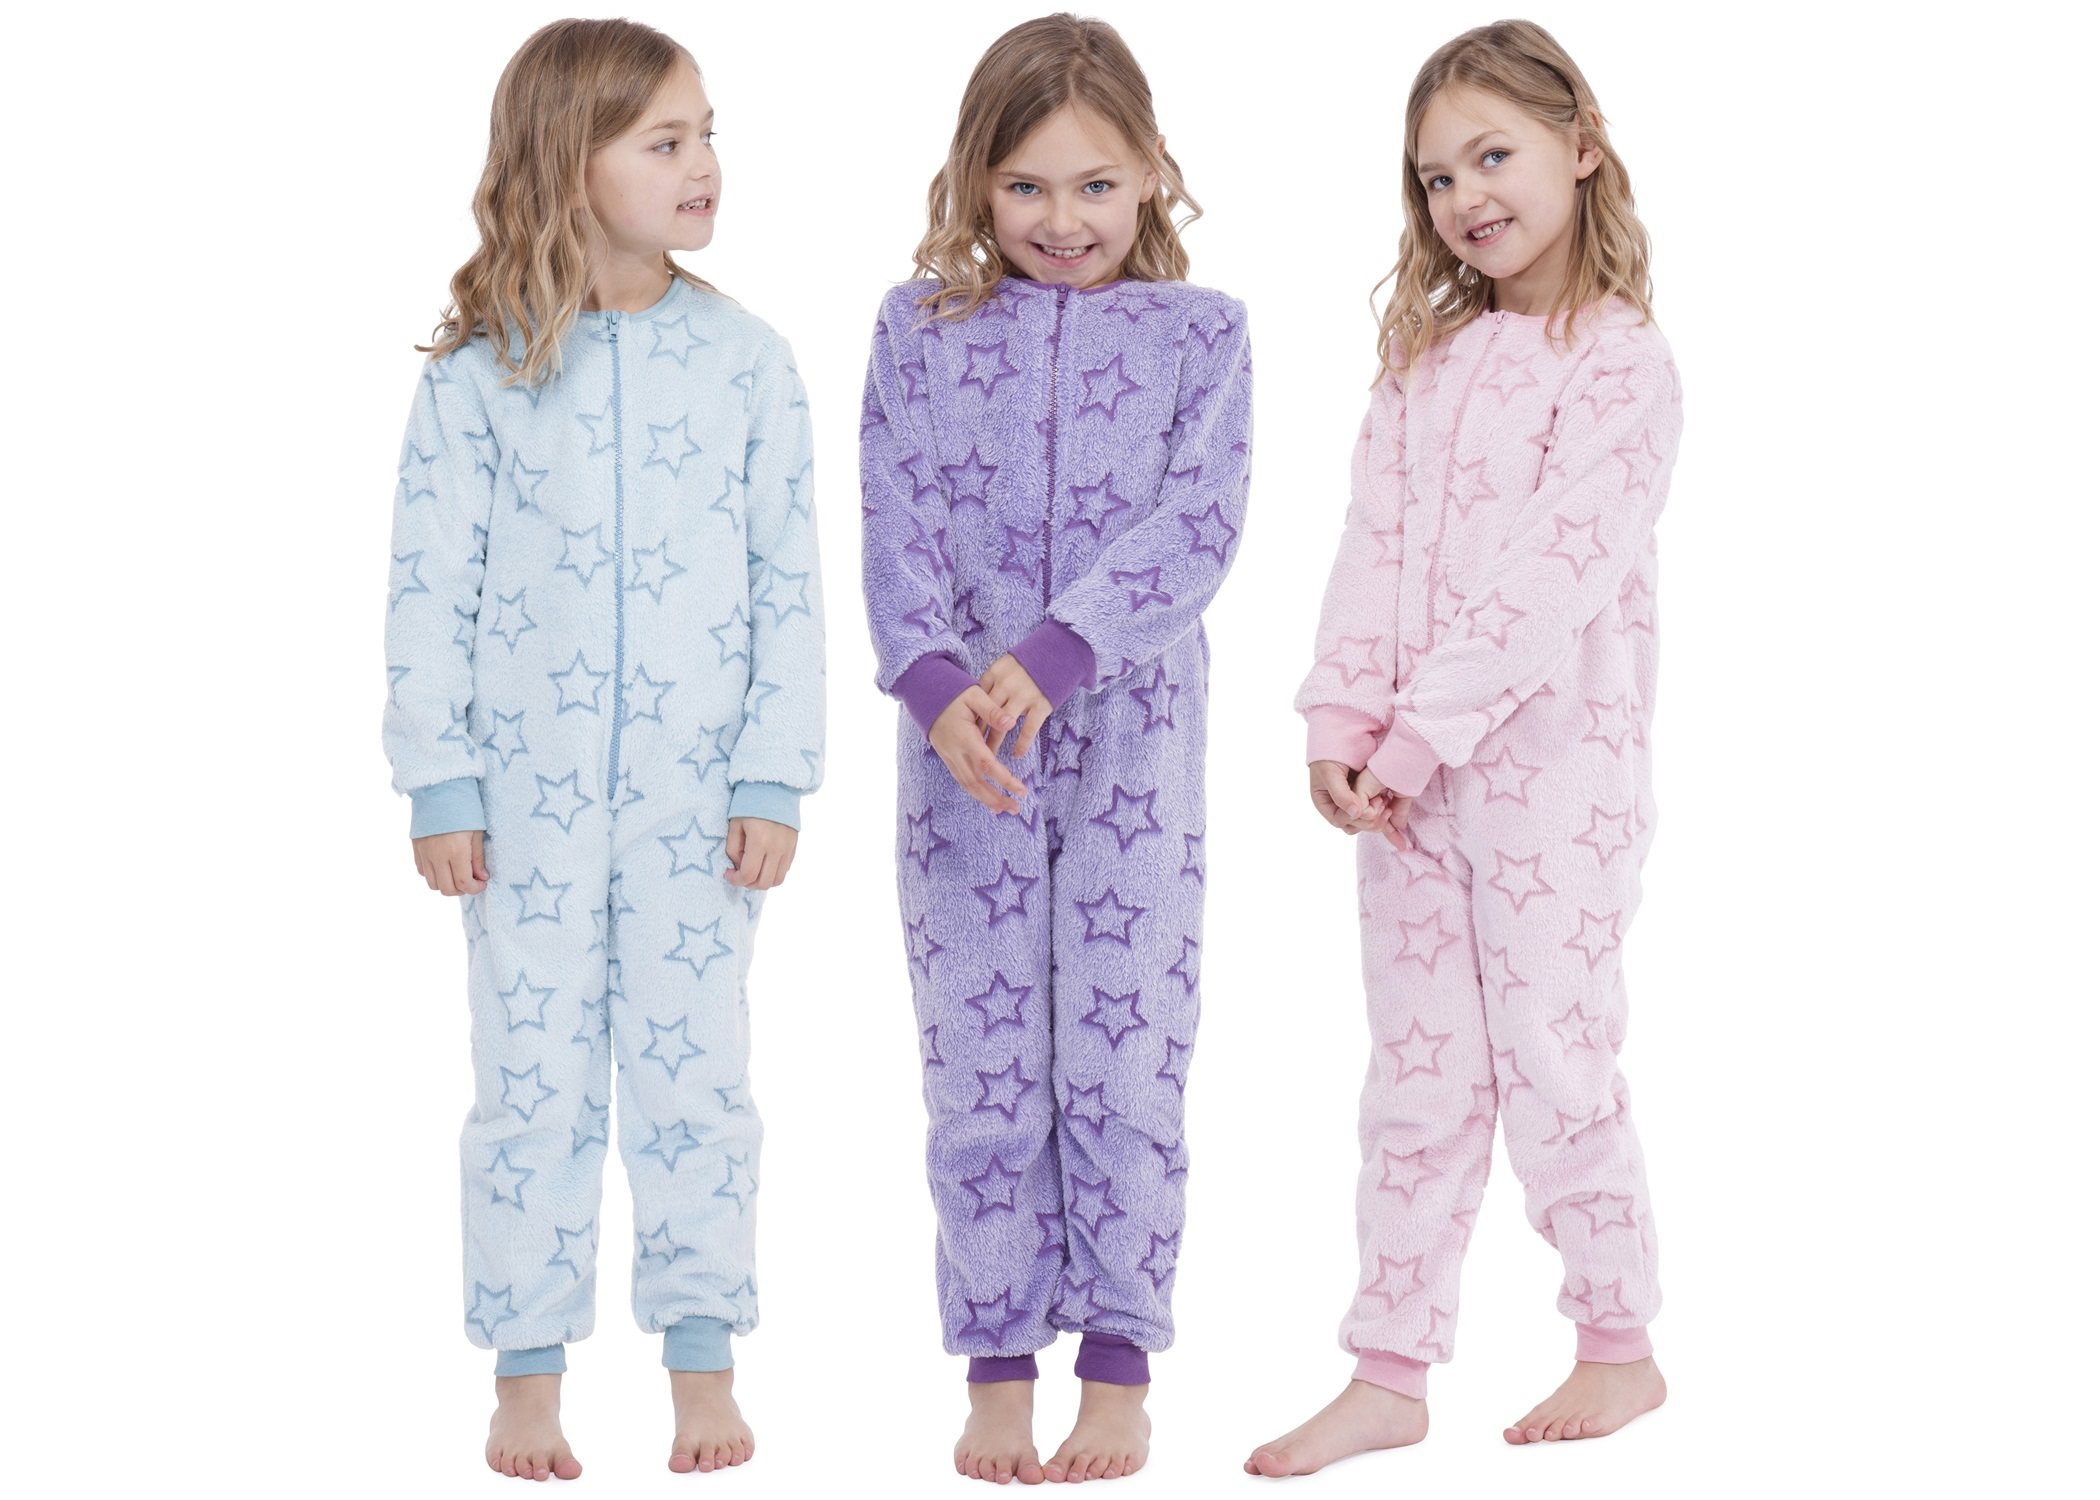 Kids Girls Boys Hooded Fleece Onesie All In 1 Jumpsuit Pjs Pyjamas ...